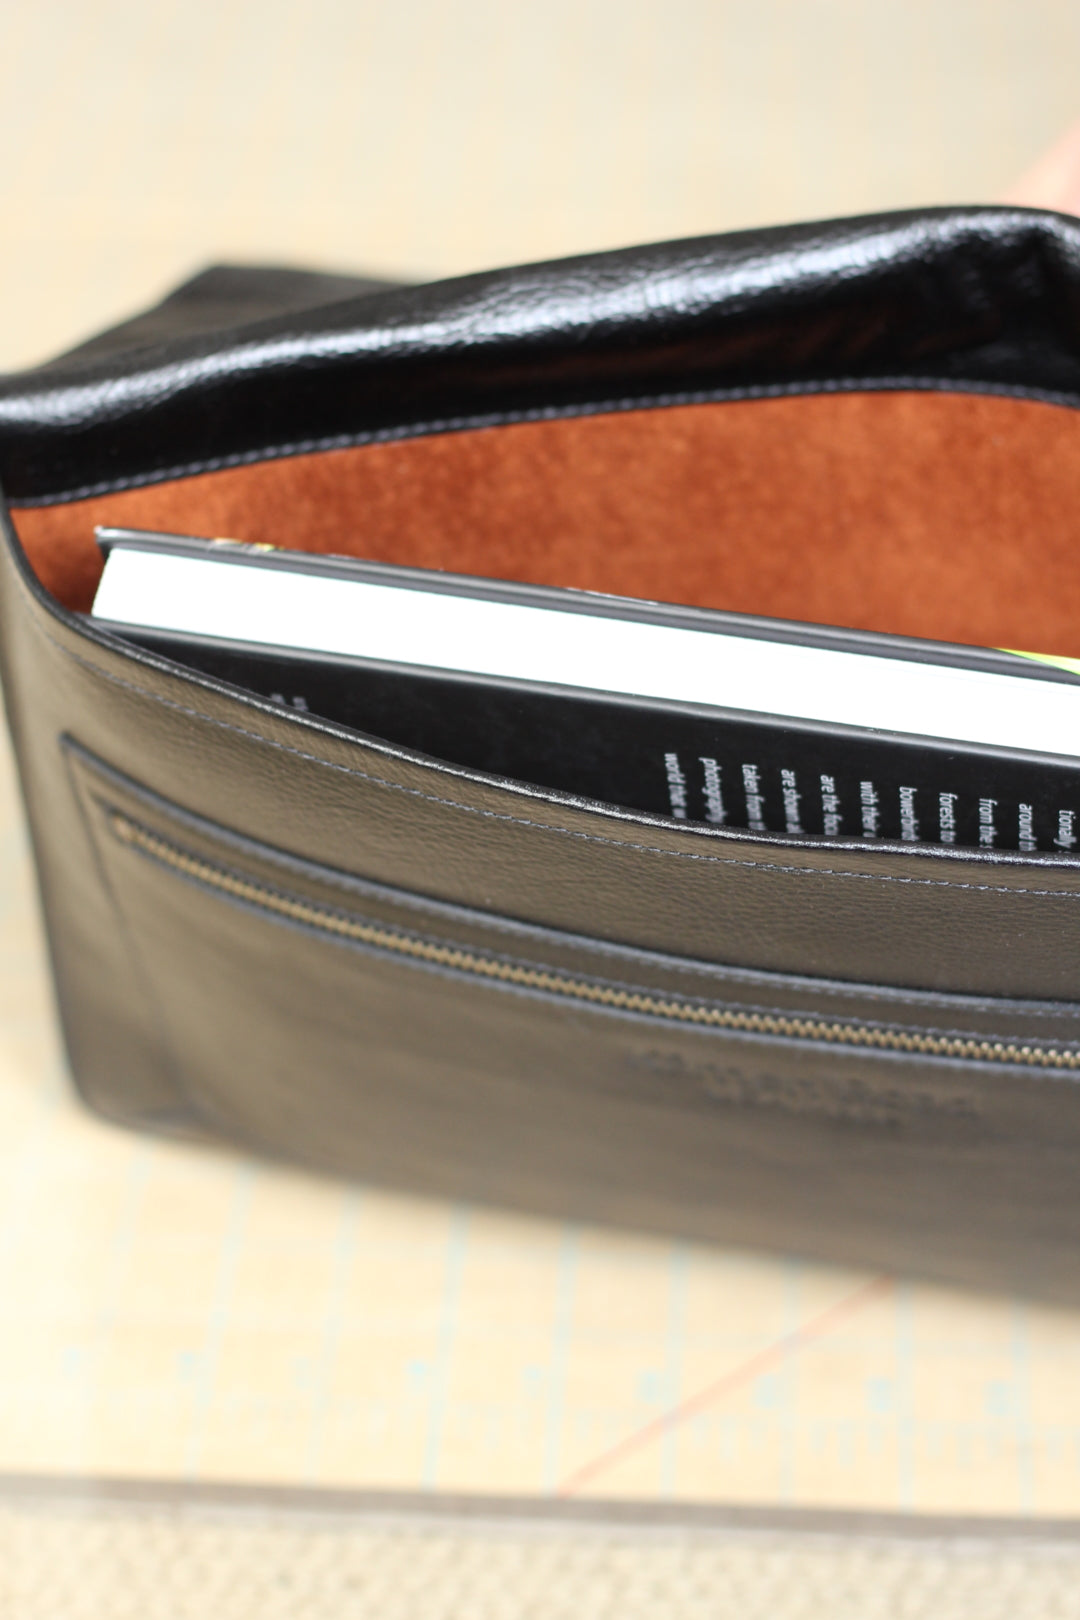 Corporate Gifts made by Kámen Road, the American brand that specializes in Luxury Leather Goods